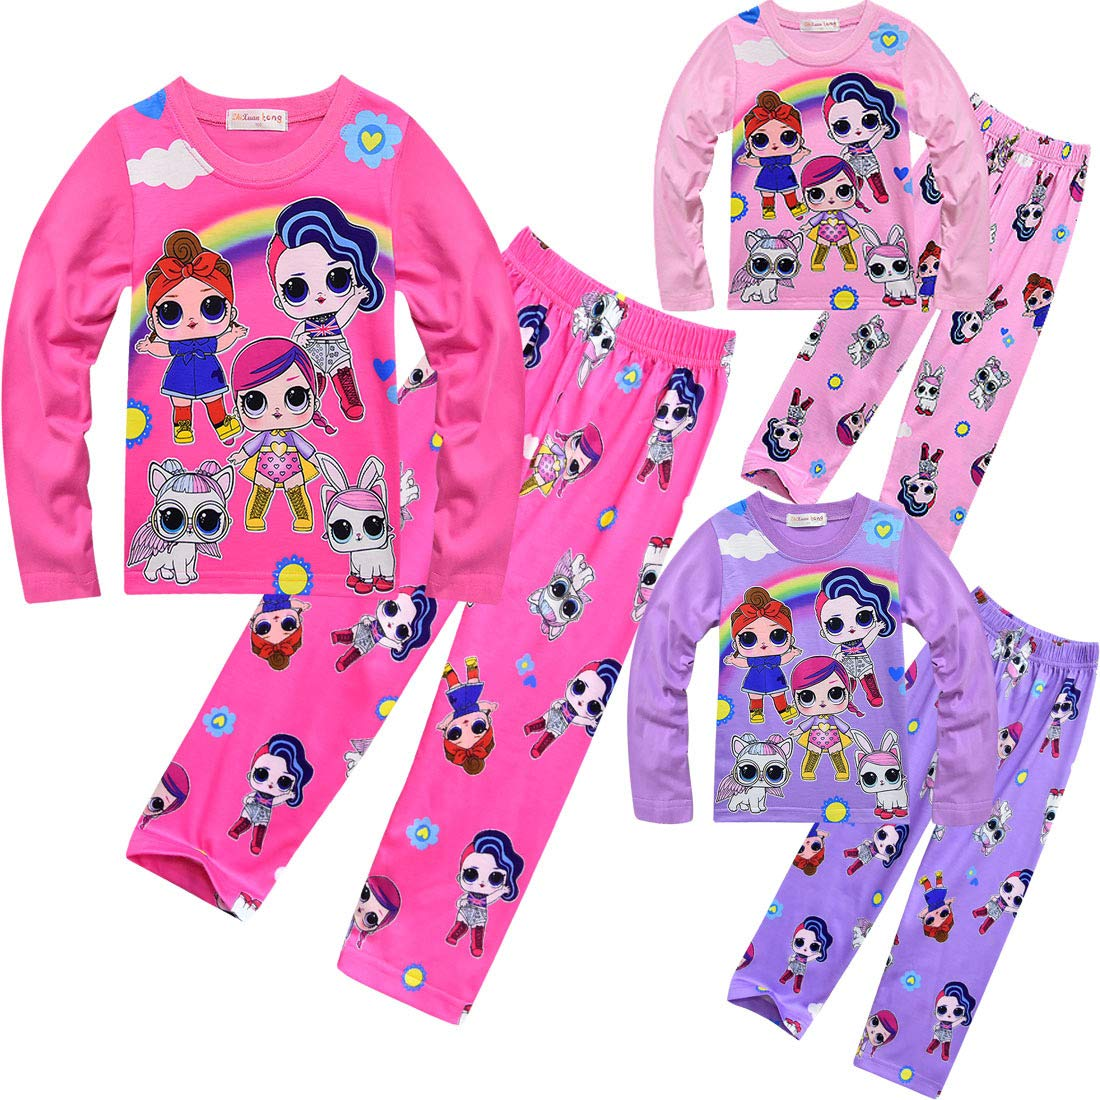 Two Piece Girls Christmas Doll Surprised Pajamas Set Cotton Pjs Toddler Clothes Set Kids Night Sleepwear Pyjamas